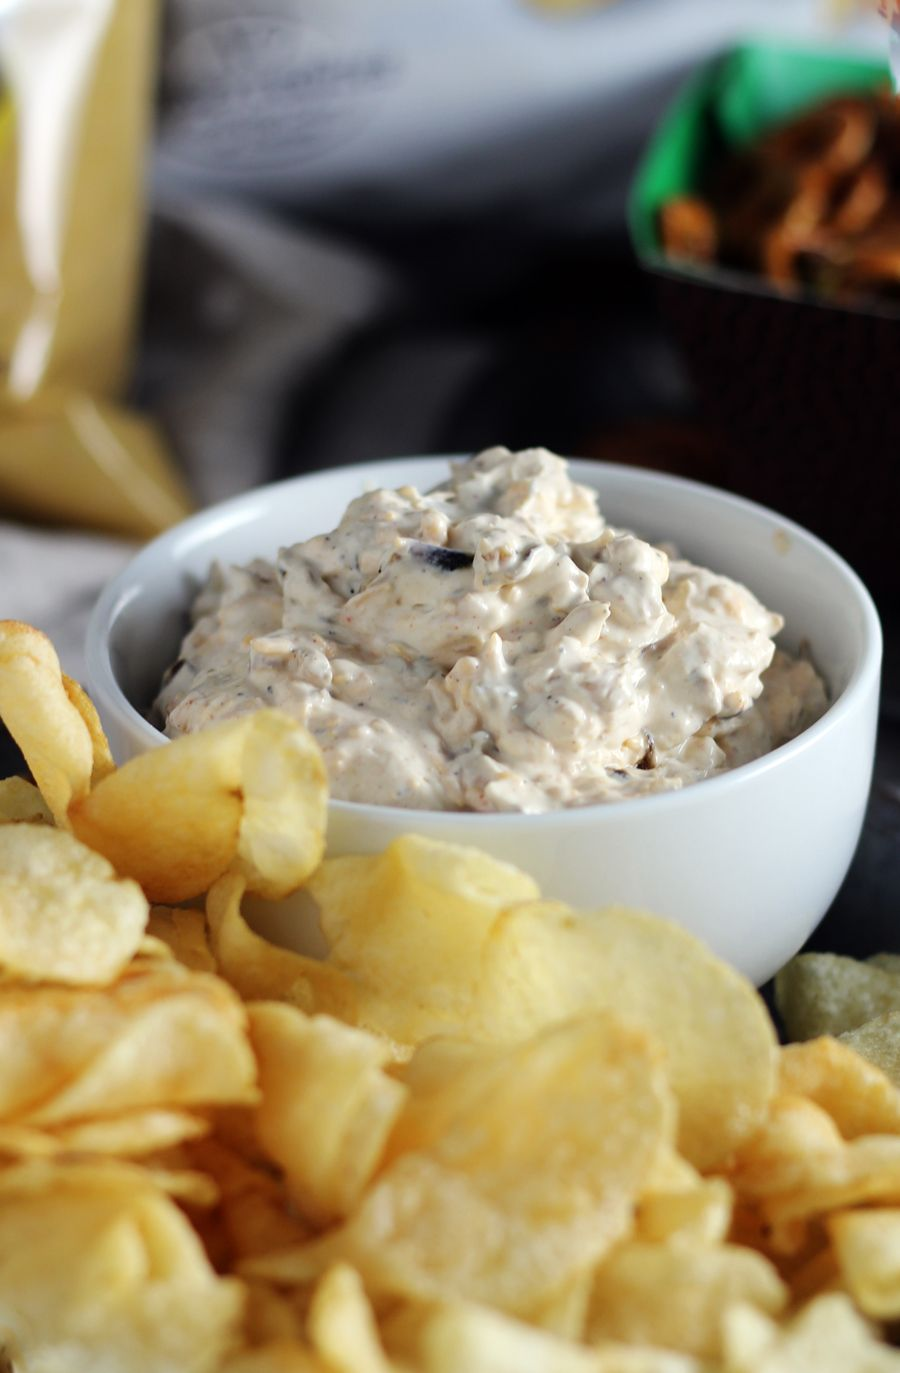 A Bowl Of Sour Cream Cheddar French Onion Dip Next To Kettle Cooked Potato Chips French Onion Dip Onion Dip Recipes